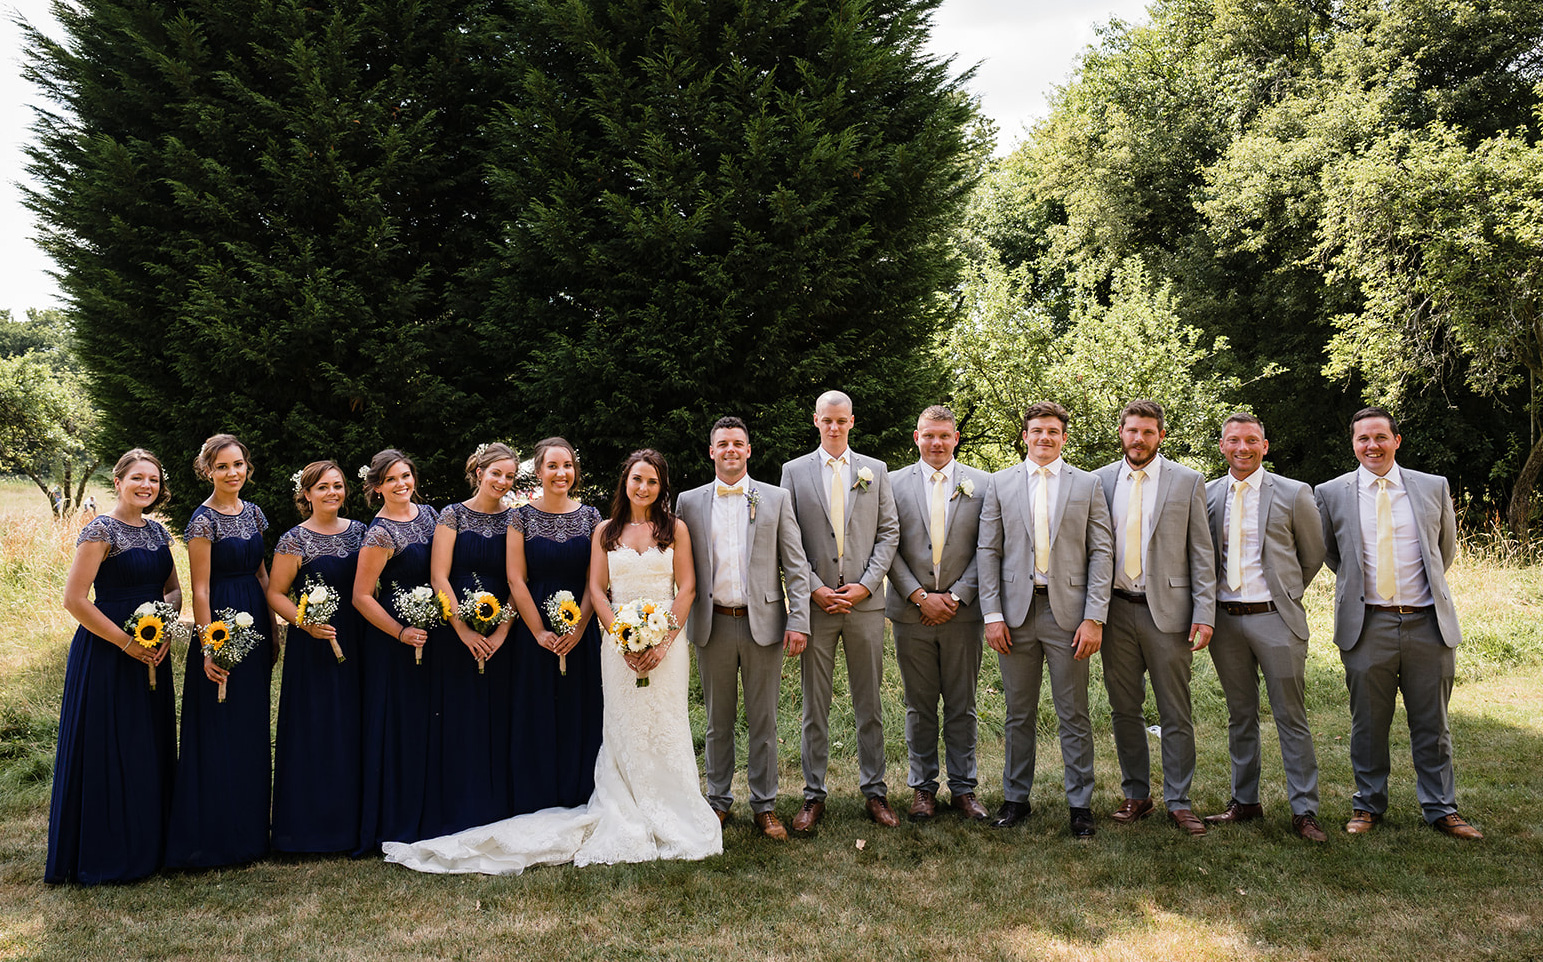 festival wedding bride groom bridesmaids groomsmen